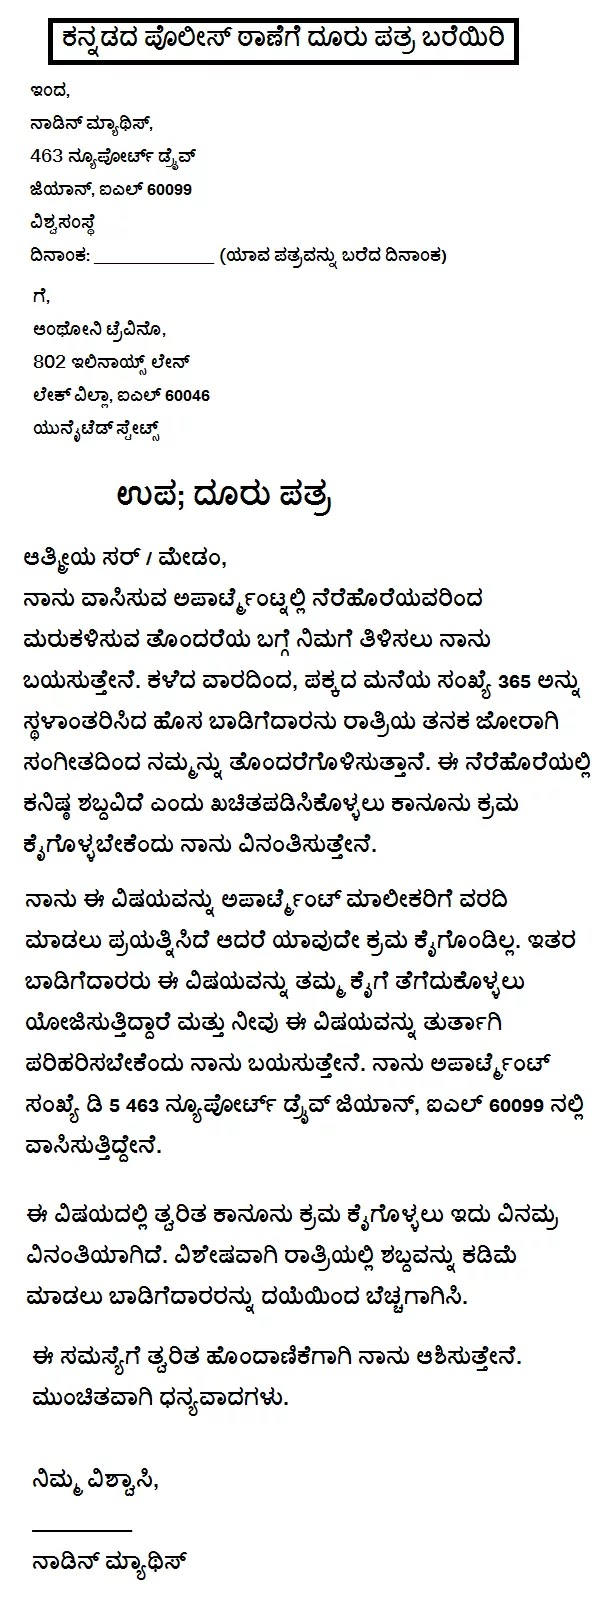 How to Write Complaint Letter to Police Station in Kannada